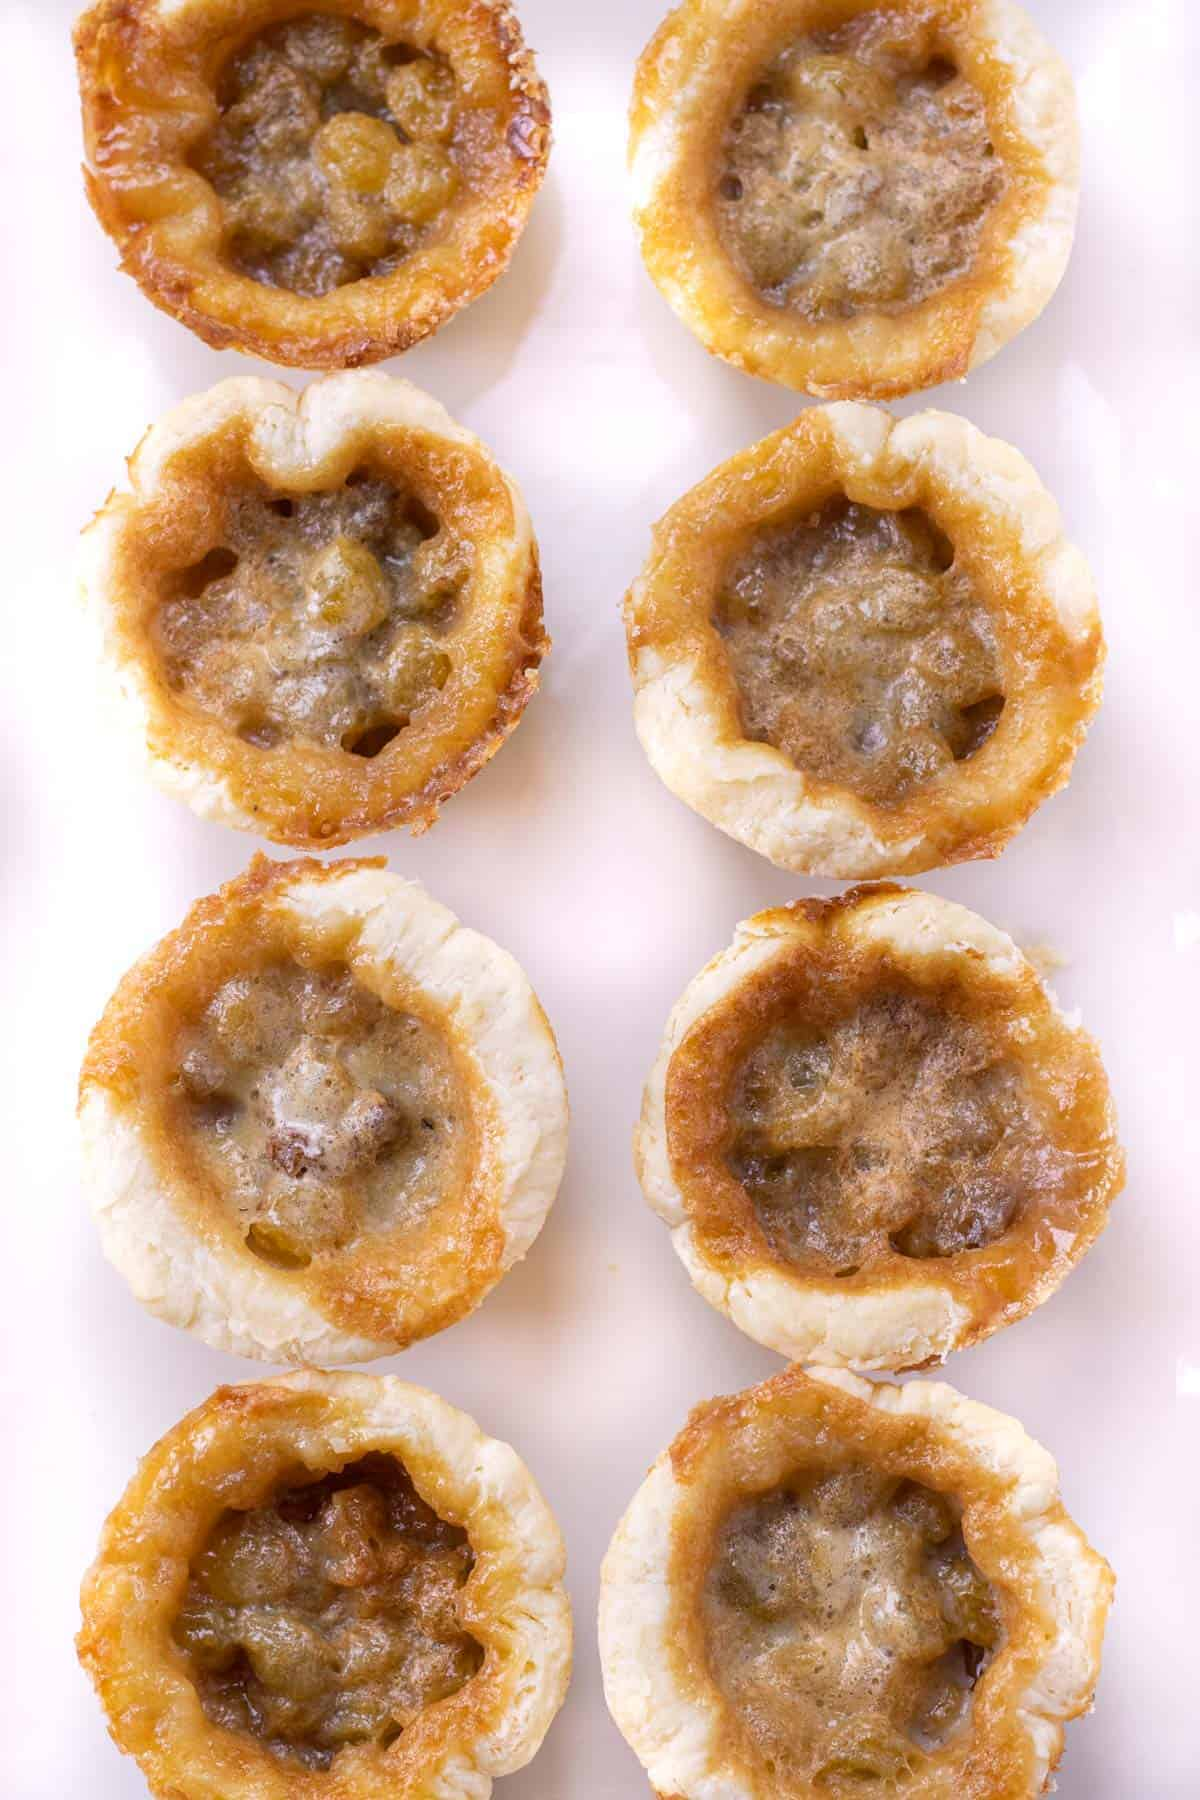 Grandma's Butter Tarts on a serving tray